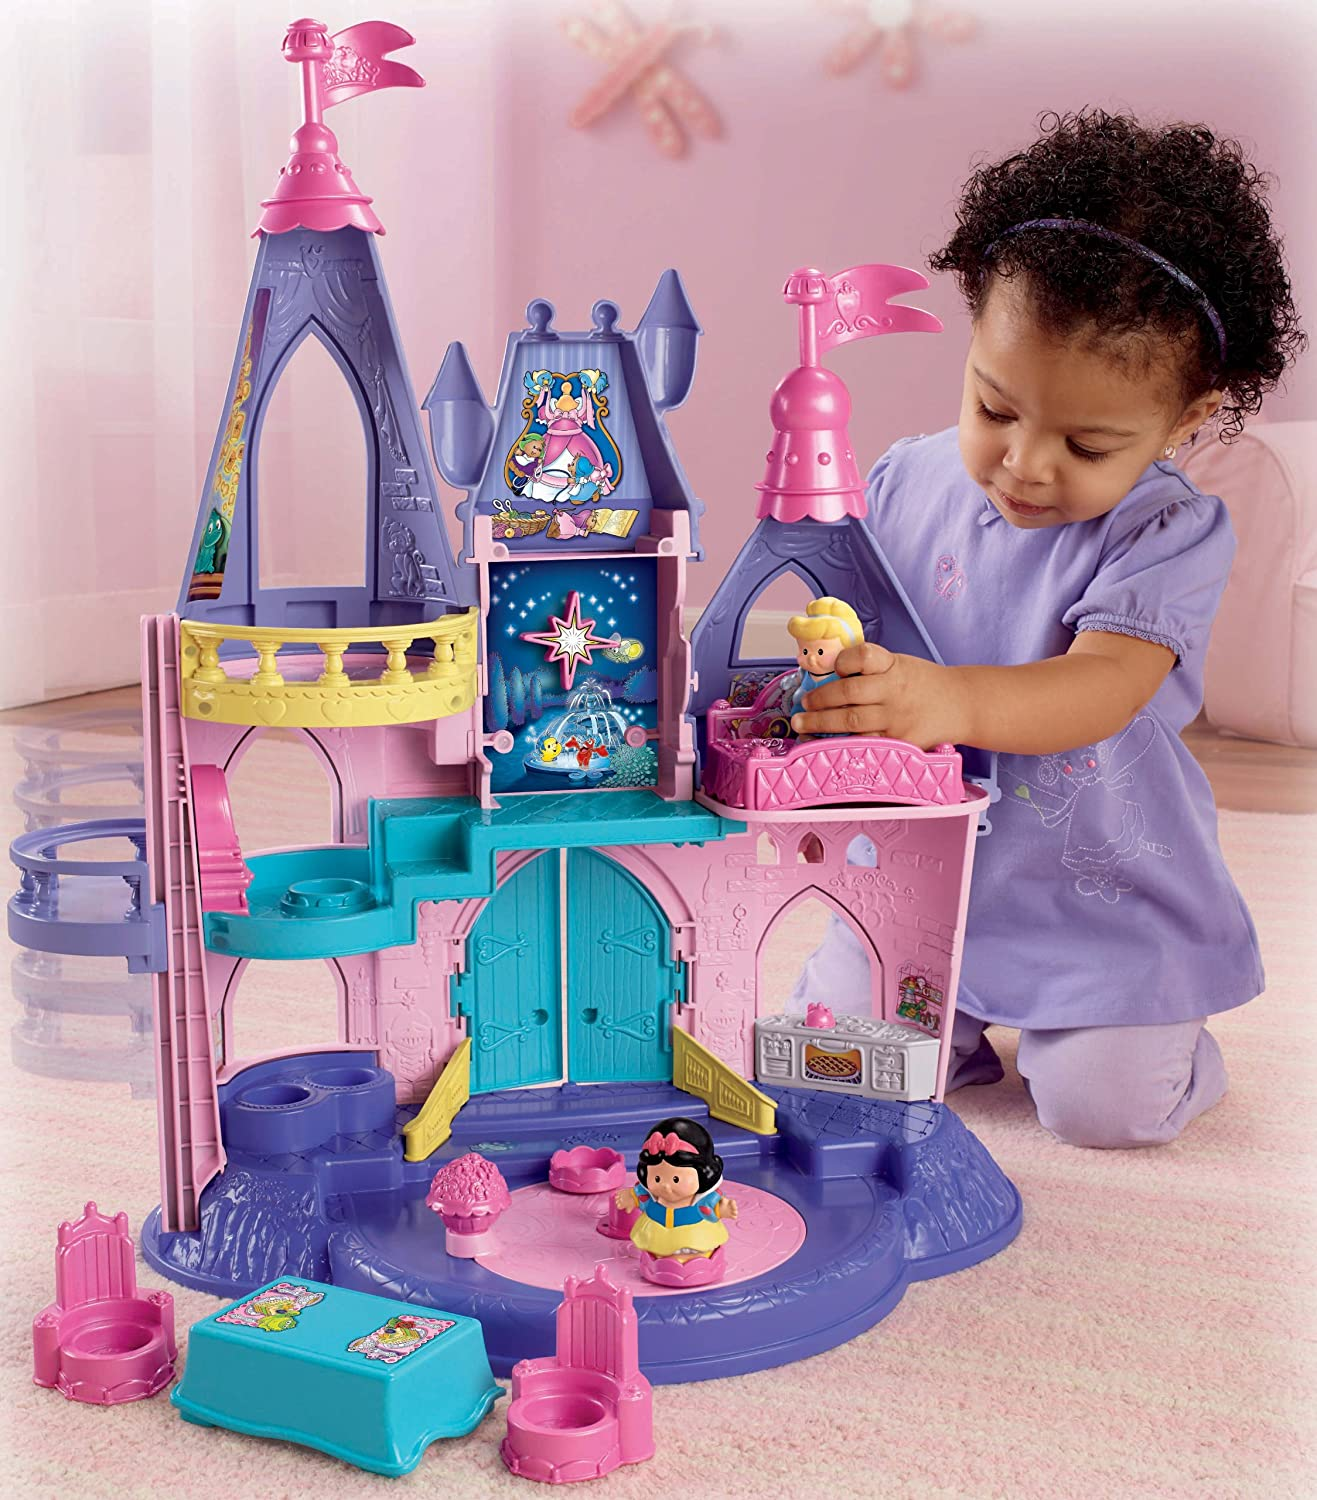 Toys For 2 Year Olds For Girls : Princess toys for year old girls best